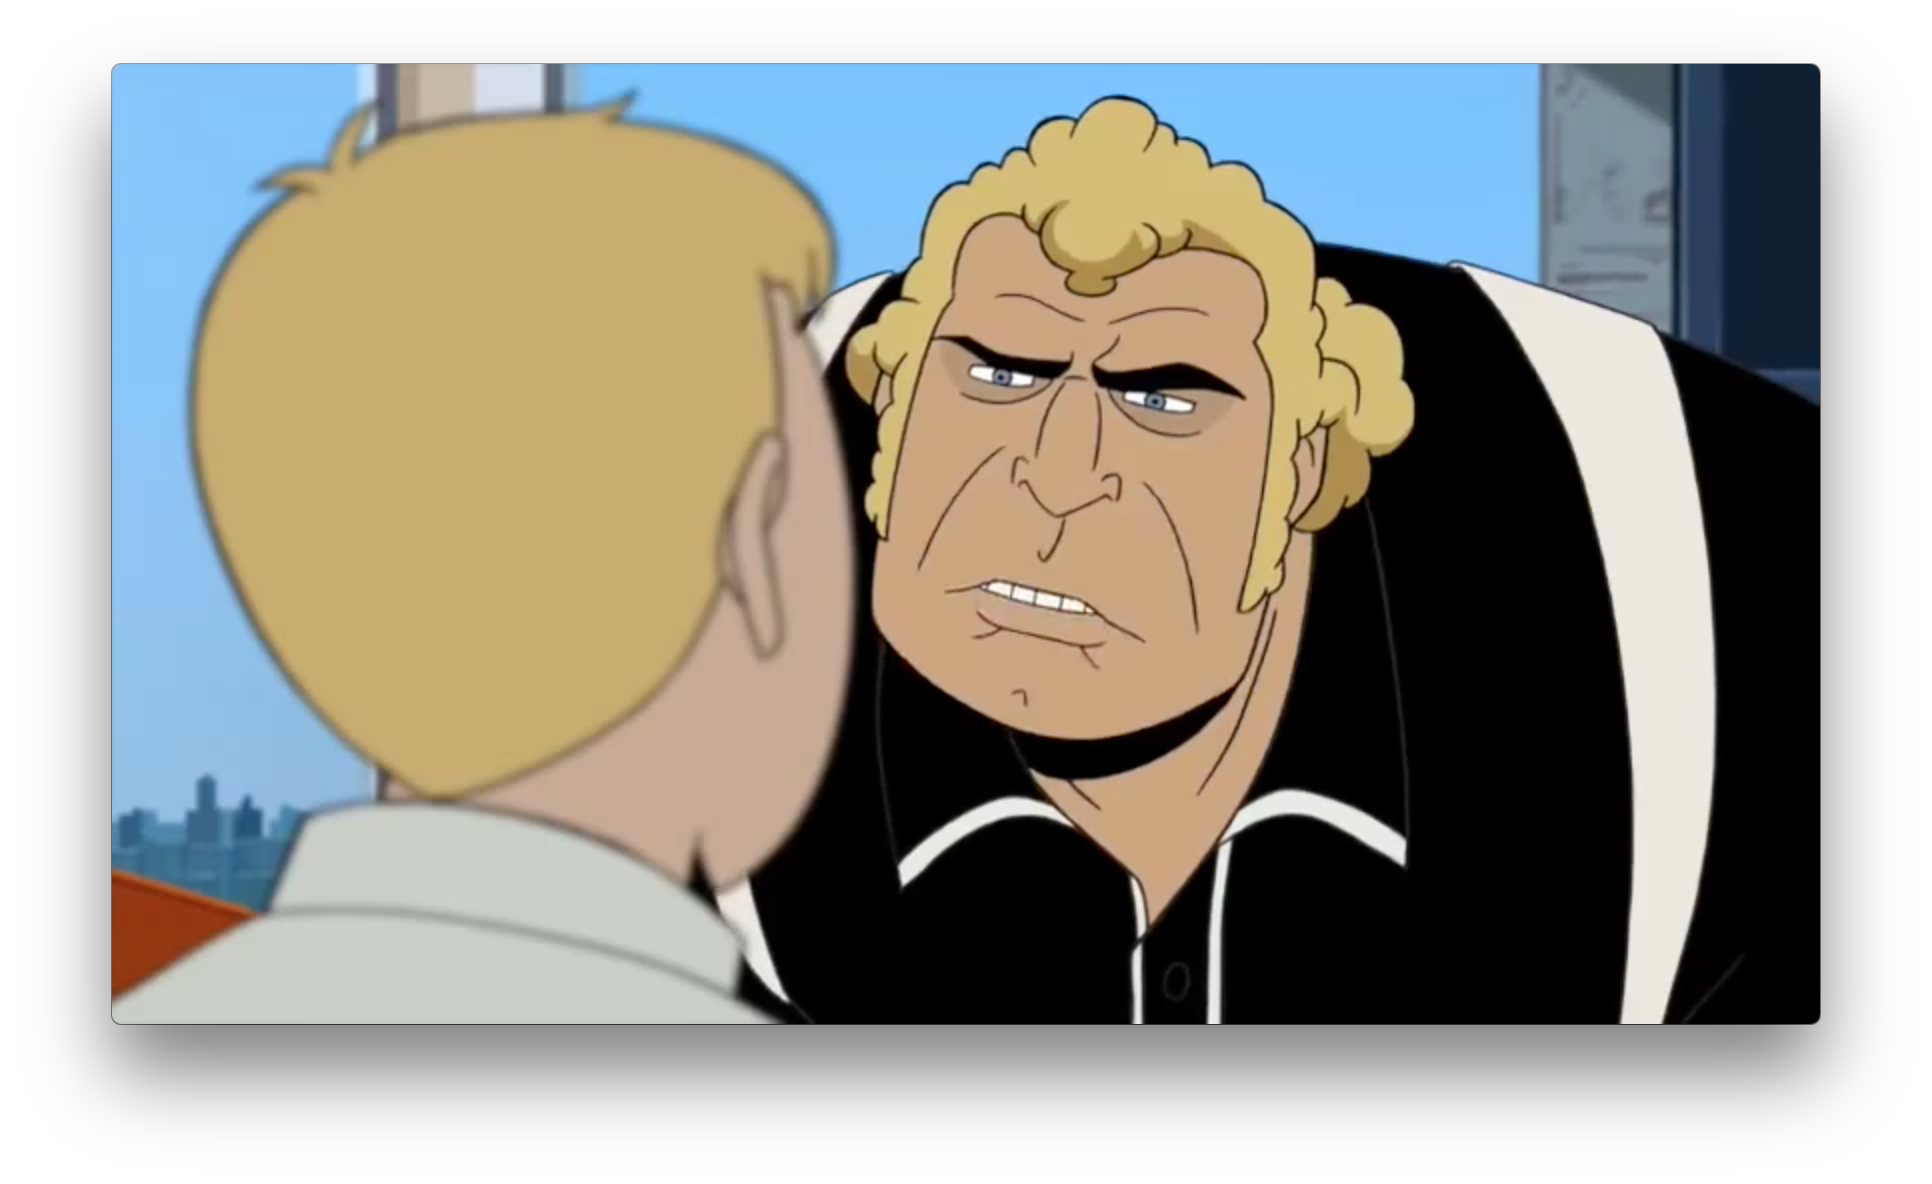 Brock and Hank get in some of their standard, memorable back-and-forths again, by the looks of it.